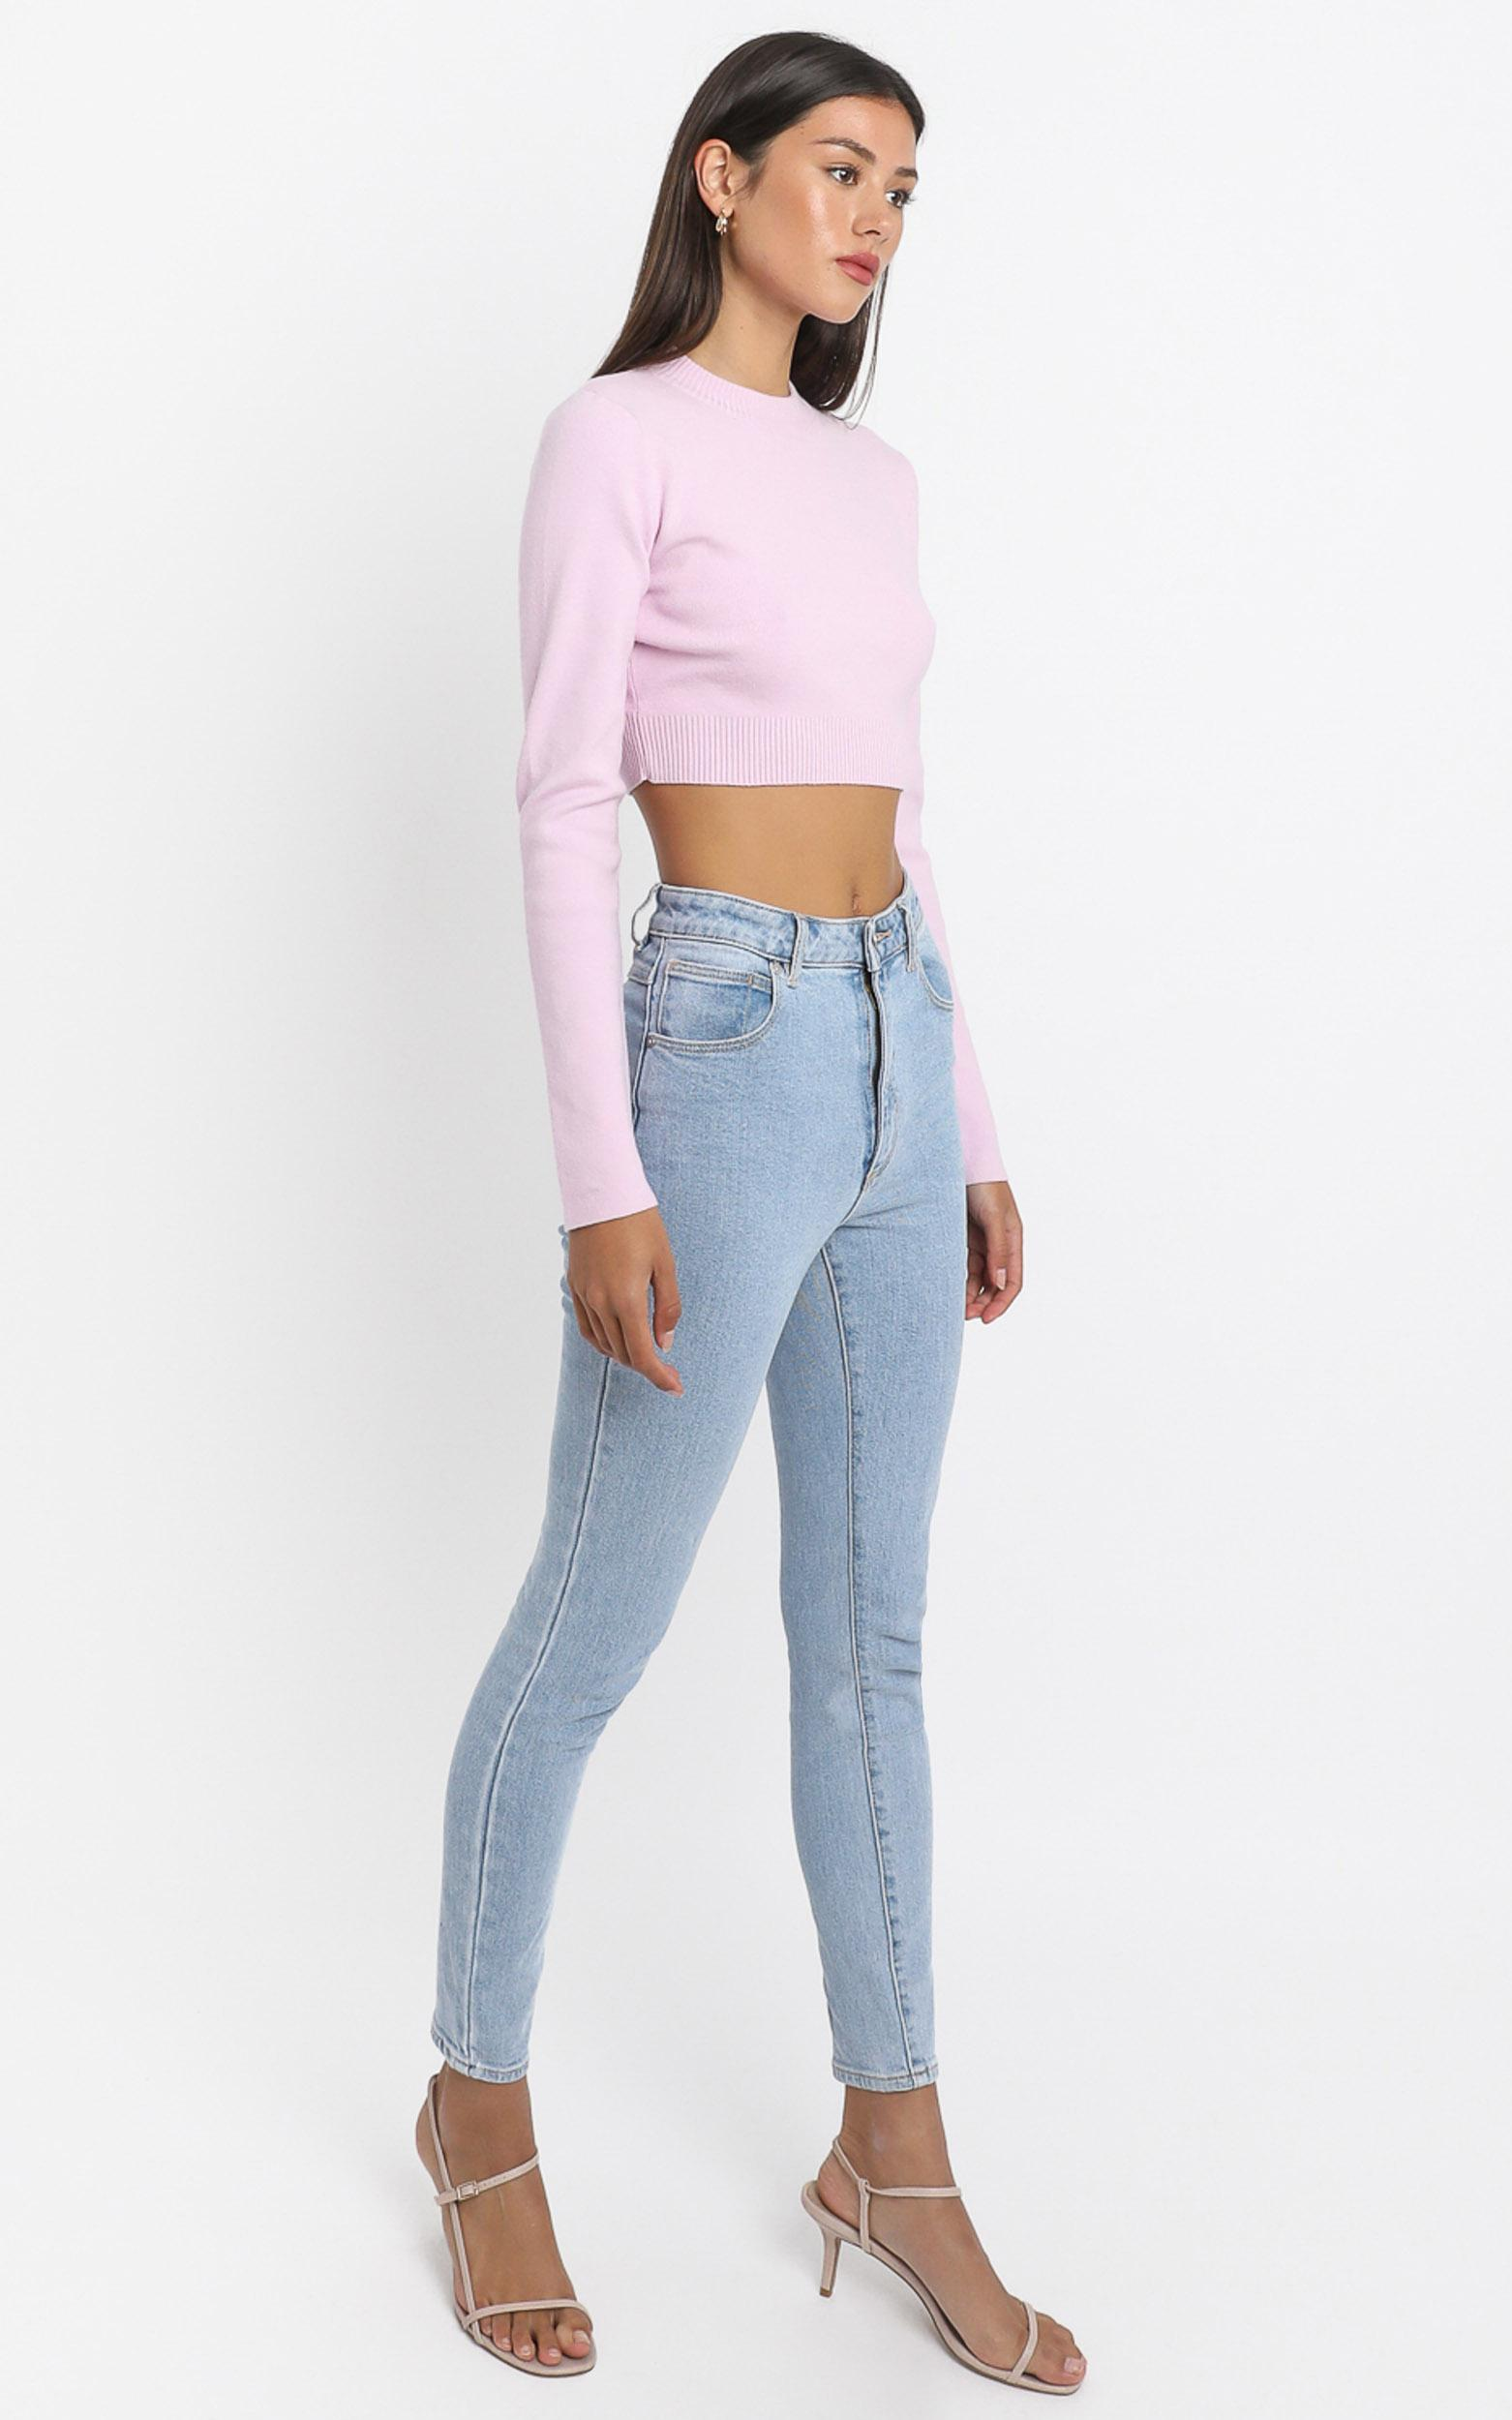 Model Off Duty Knit Top in  Pink - 8 (S), PNK2, hi-res image number null